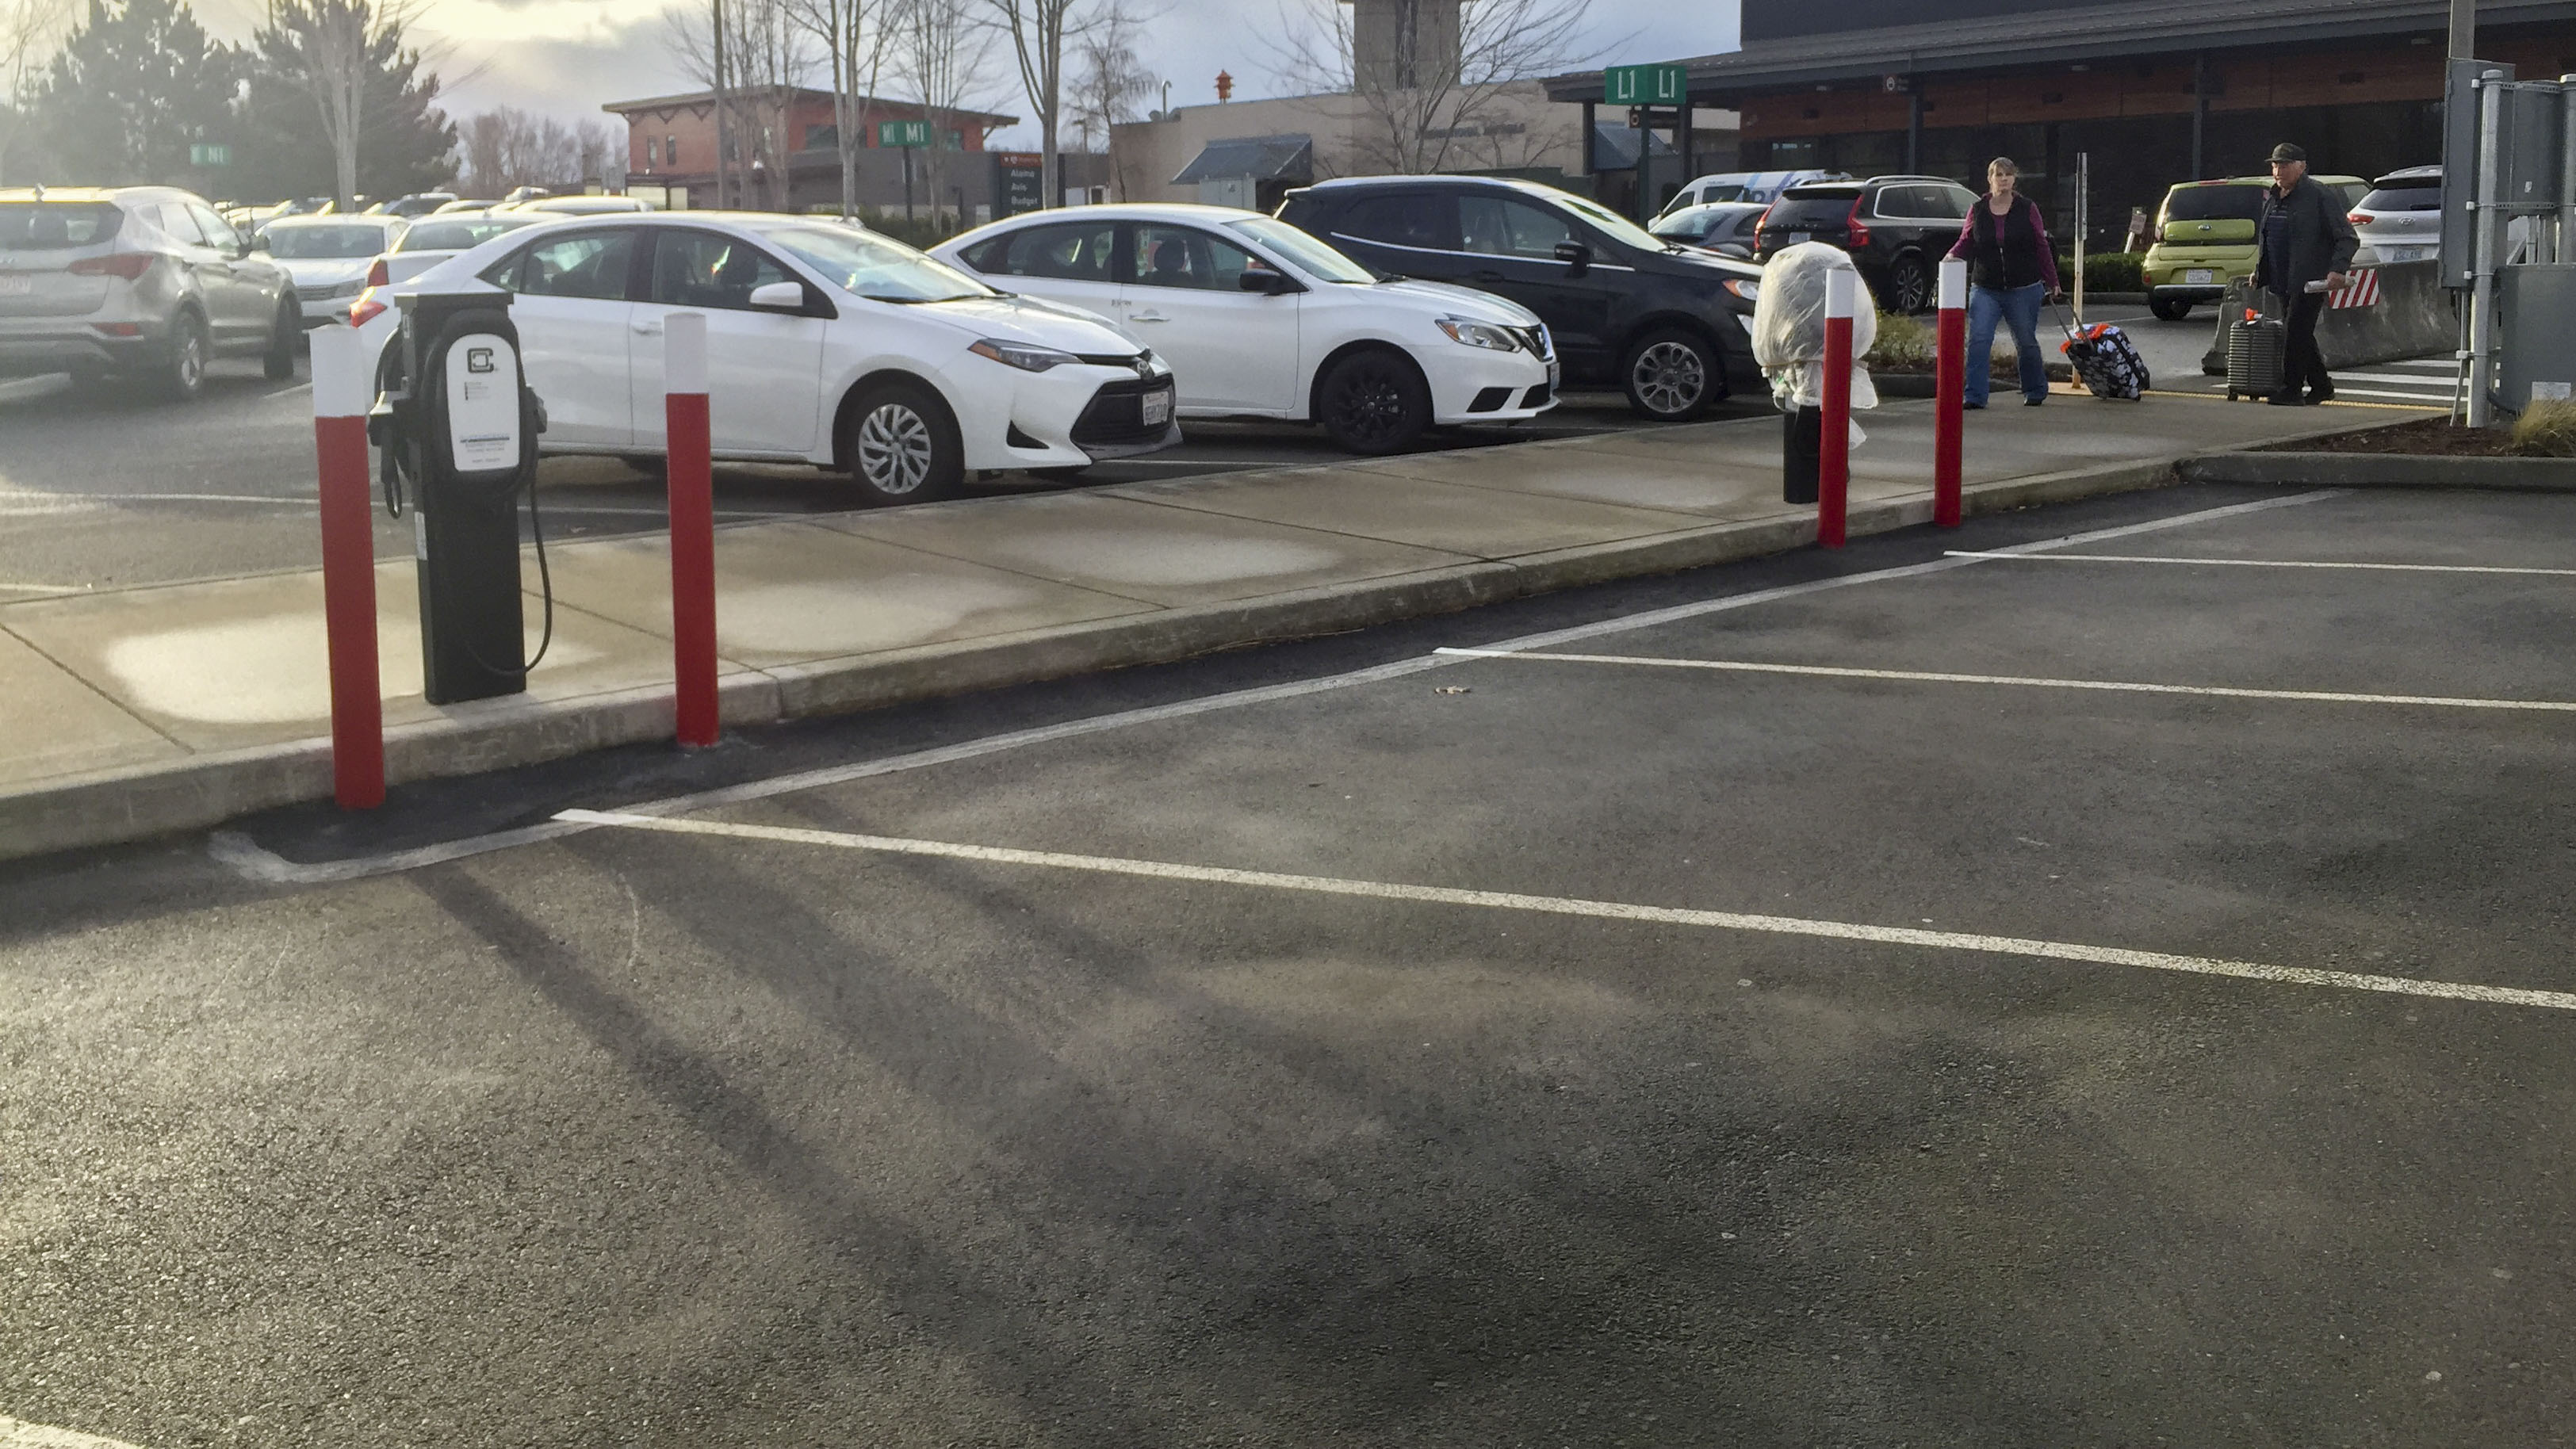 Bellingham Airport Installs Electric Vehicle Charging Stations for Travelers, Employees